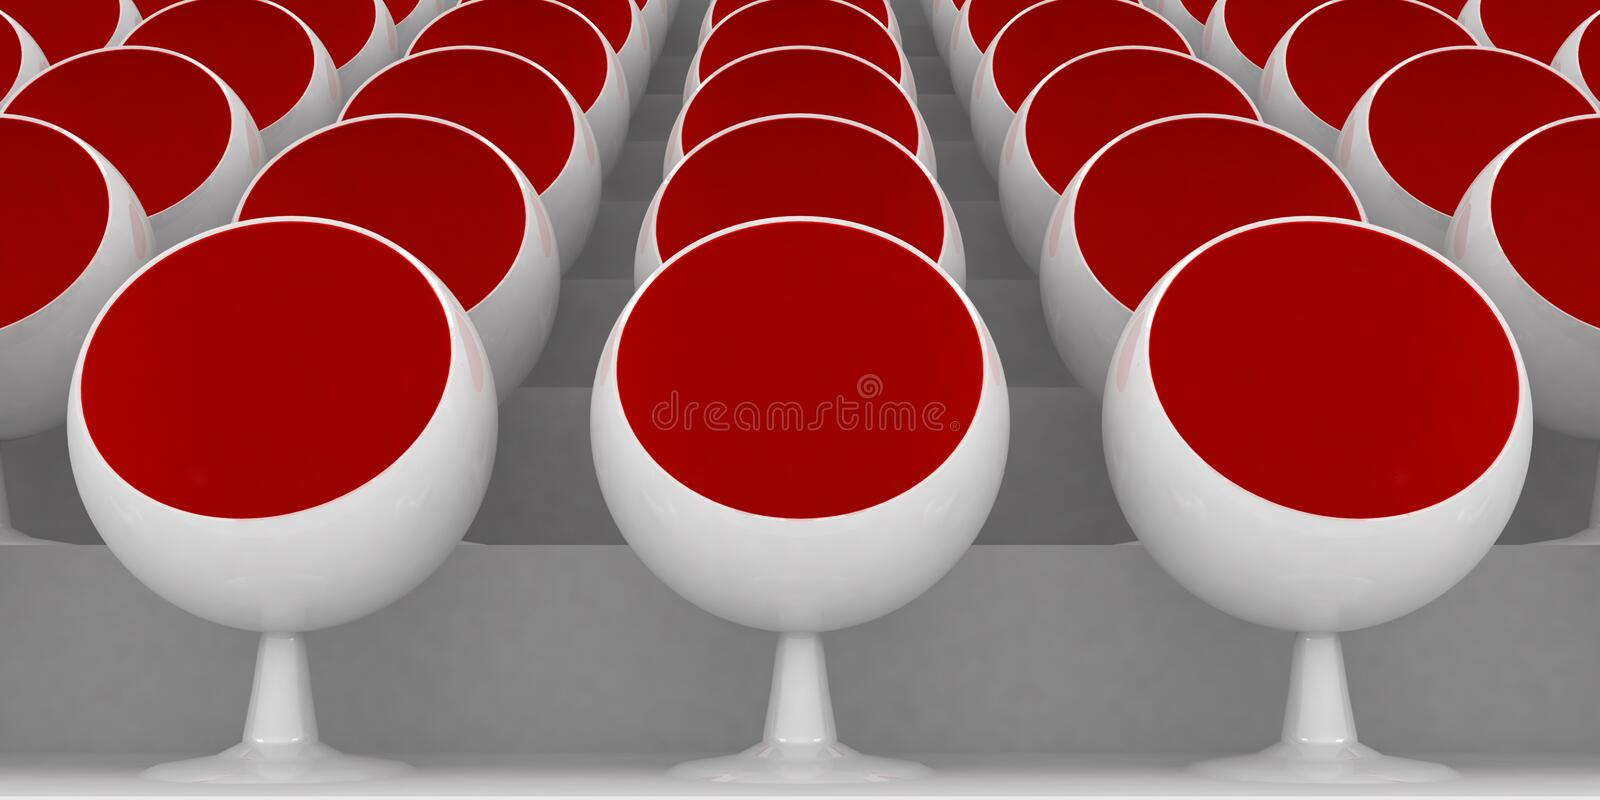 Red chairs. 3d rendering illustration of red chairs royalty free illustration